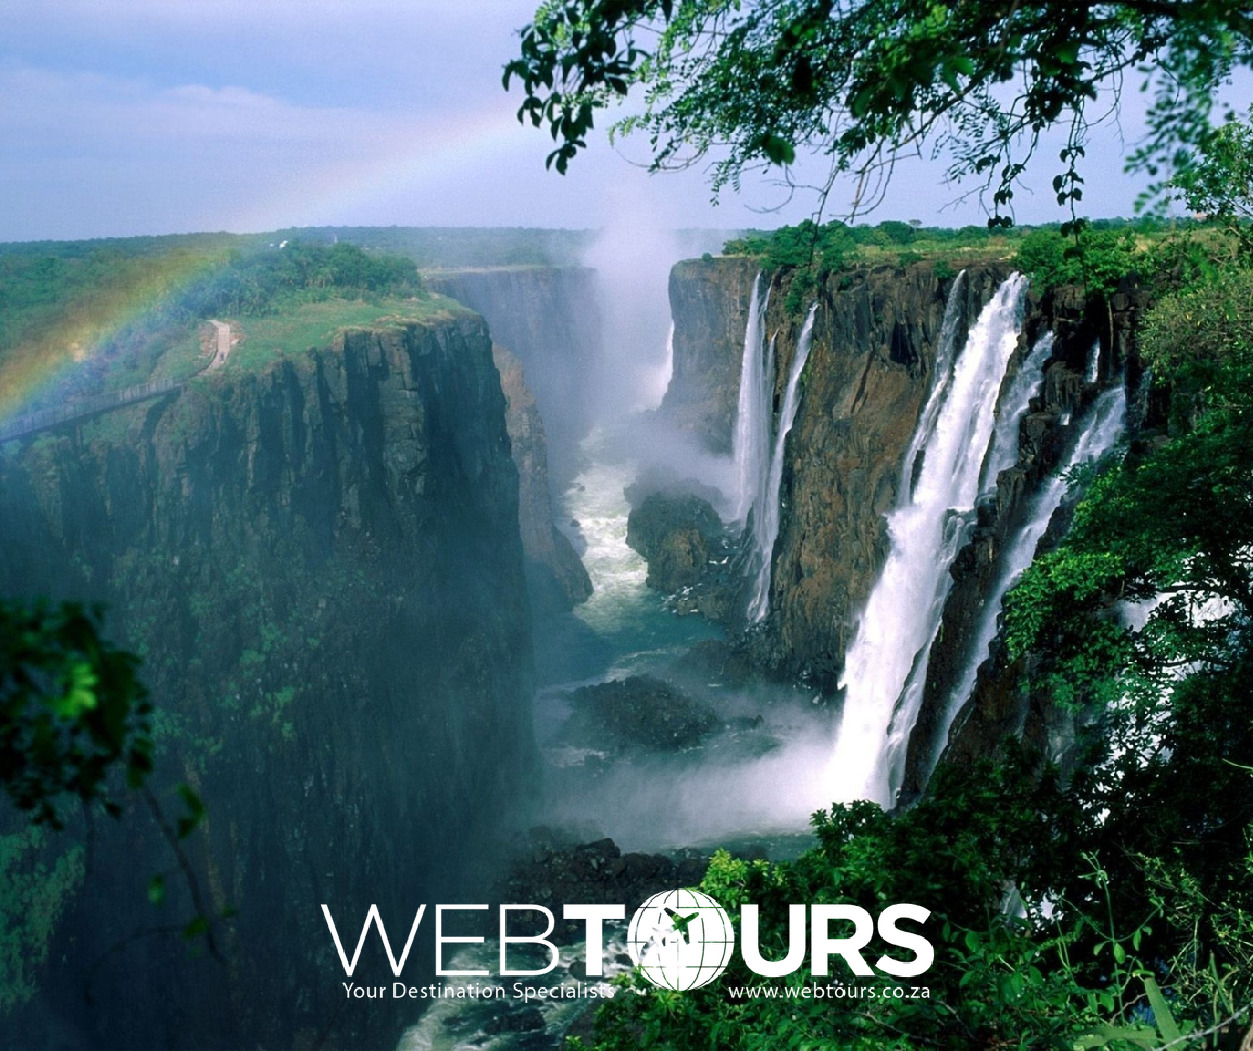 Fastjet opens the way to Victoria Falls this December